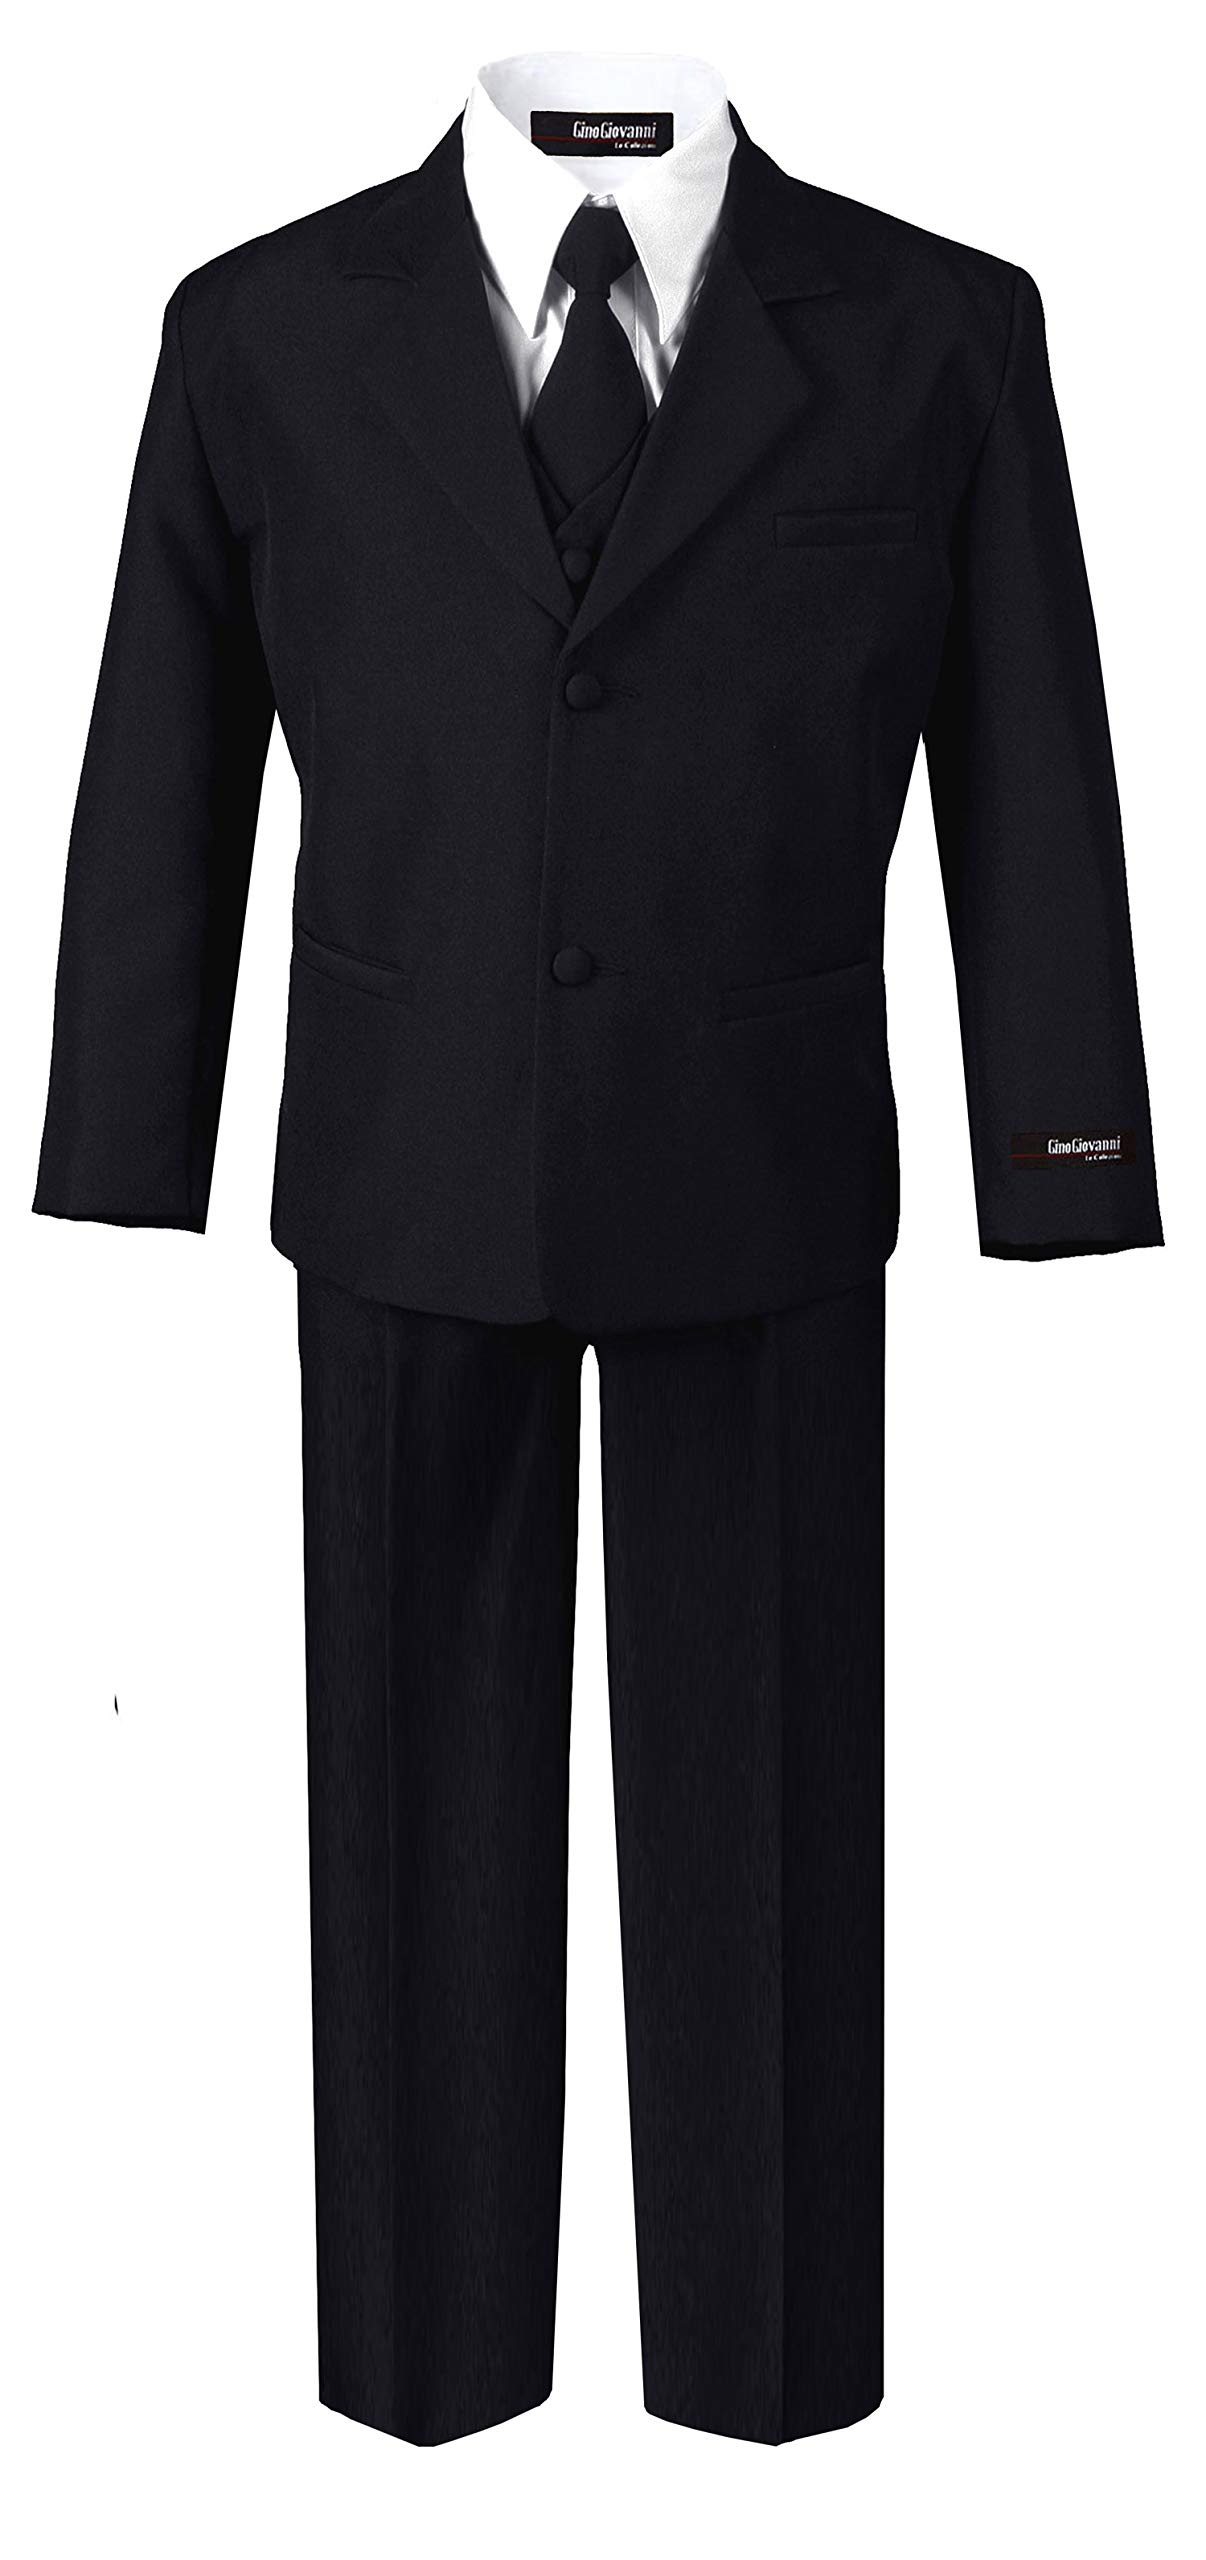 US Fairytailes Formal Boys Suit from Baby to Teen (Medium/6-12 Months, Black) by US Fairytailes